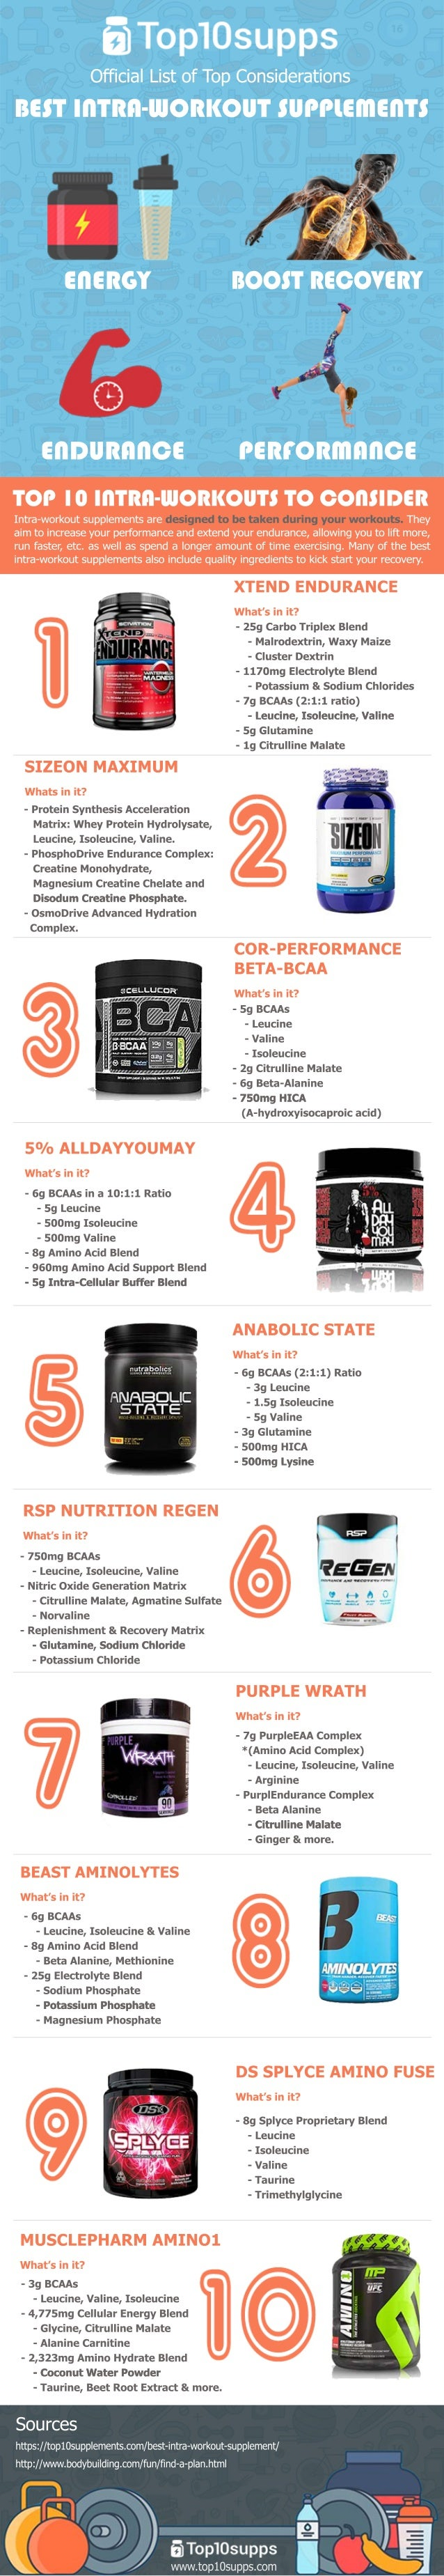 Top 10 Intra Workout Supplements (Keep Your Body at it's